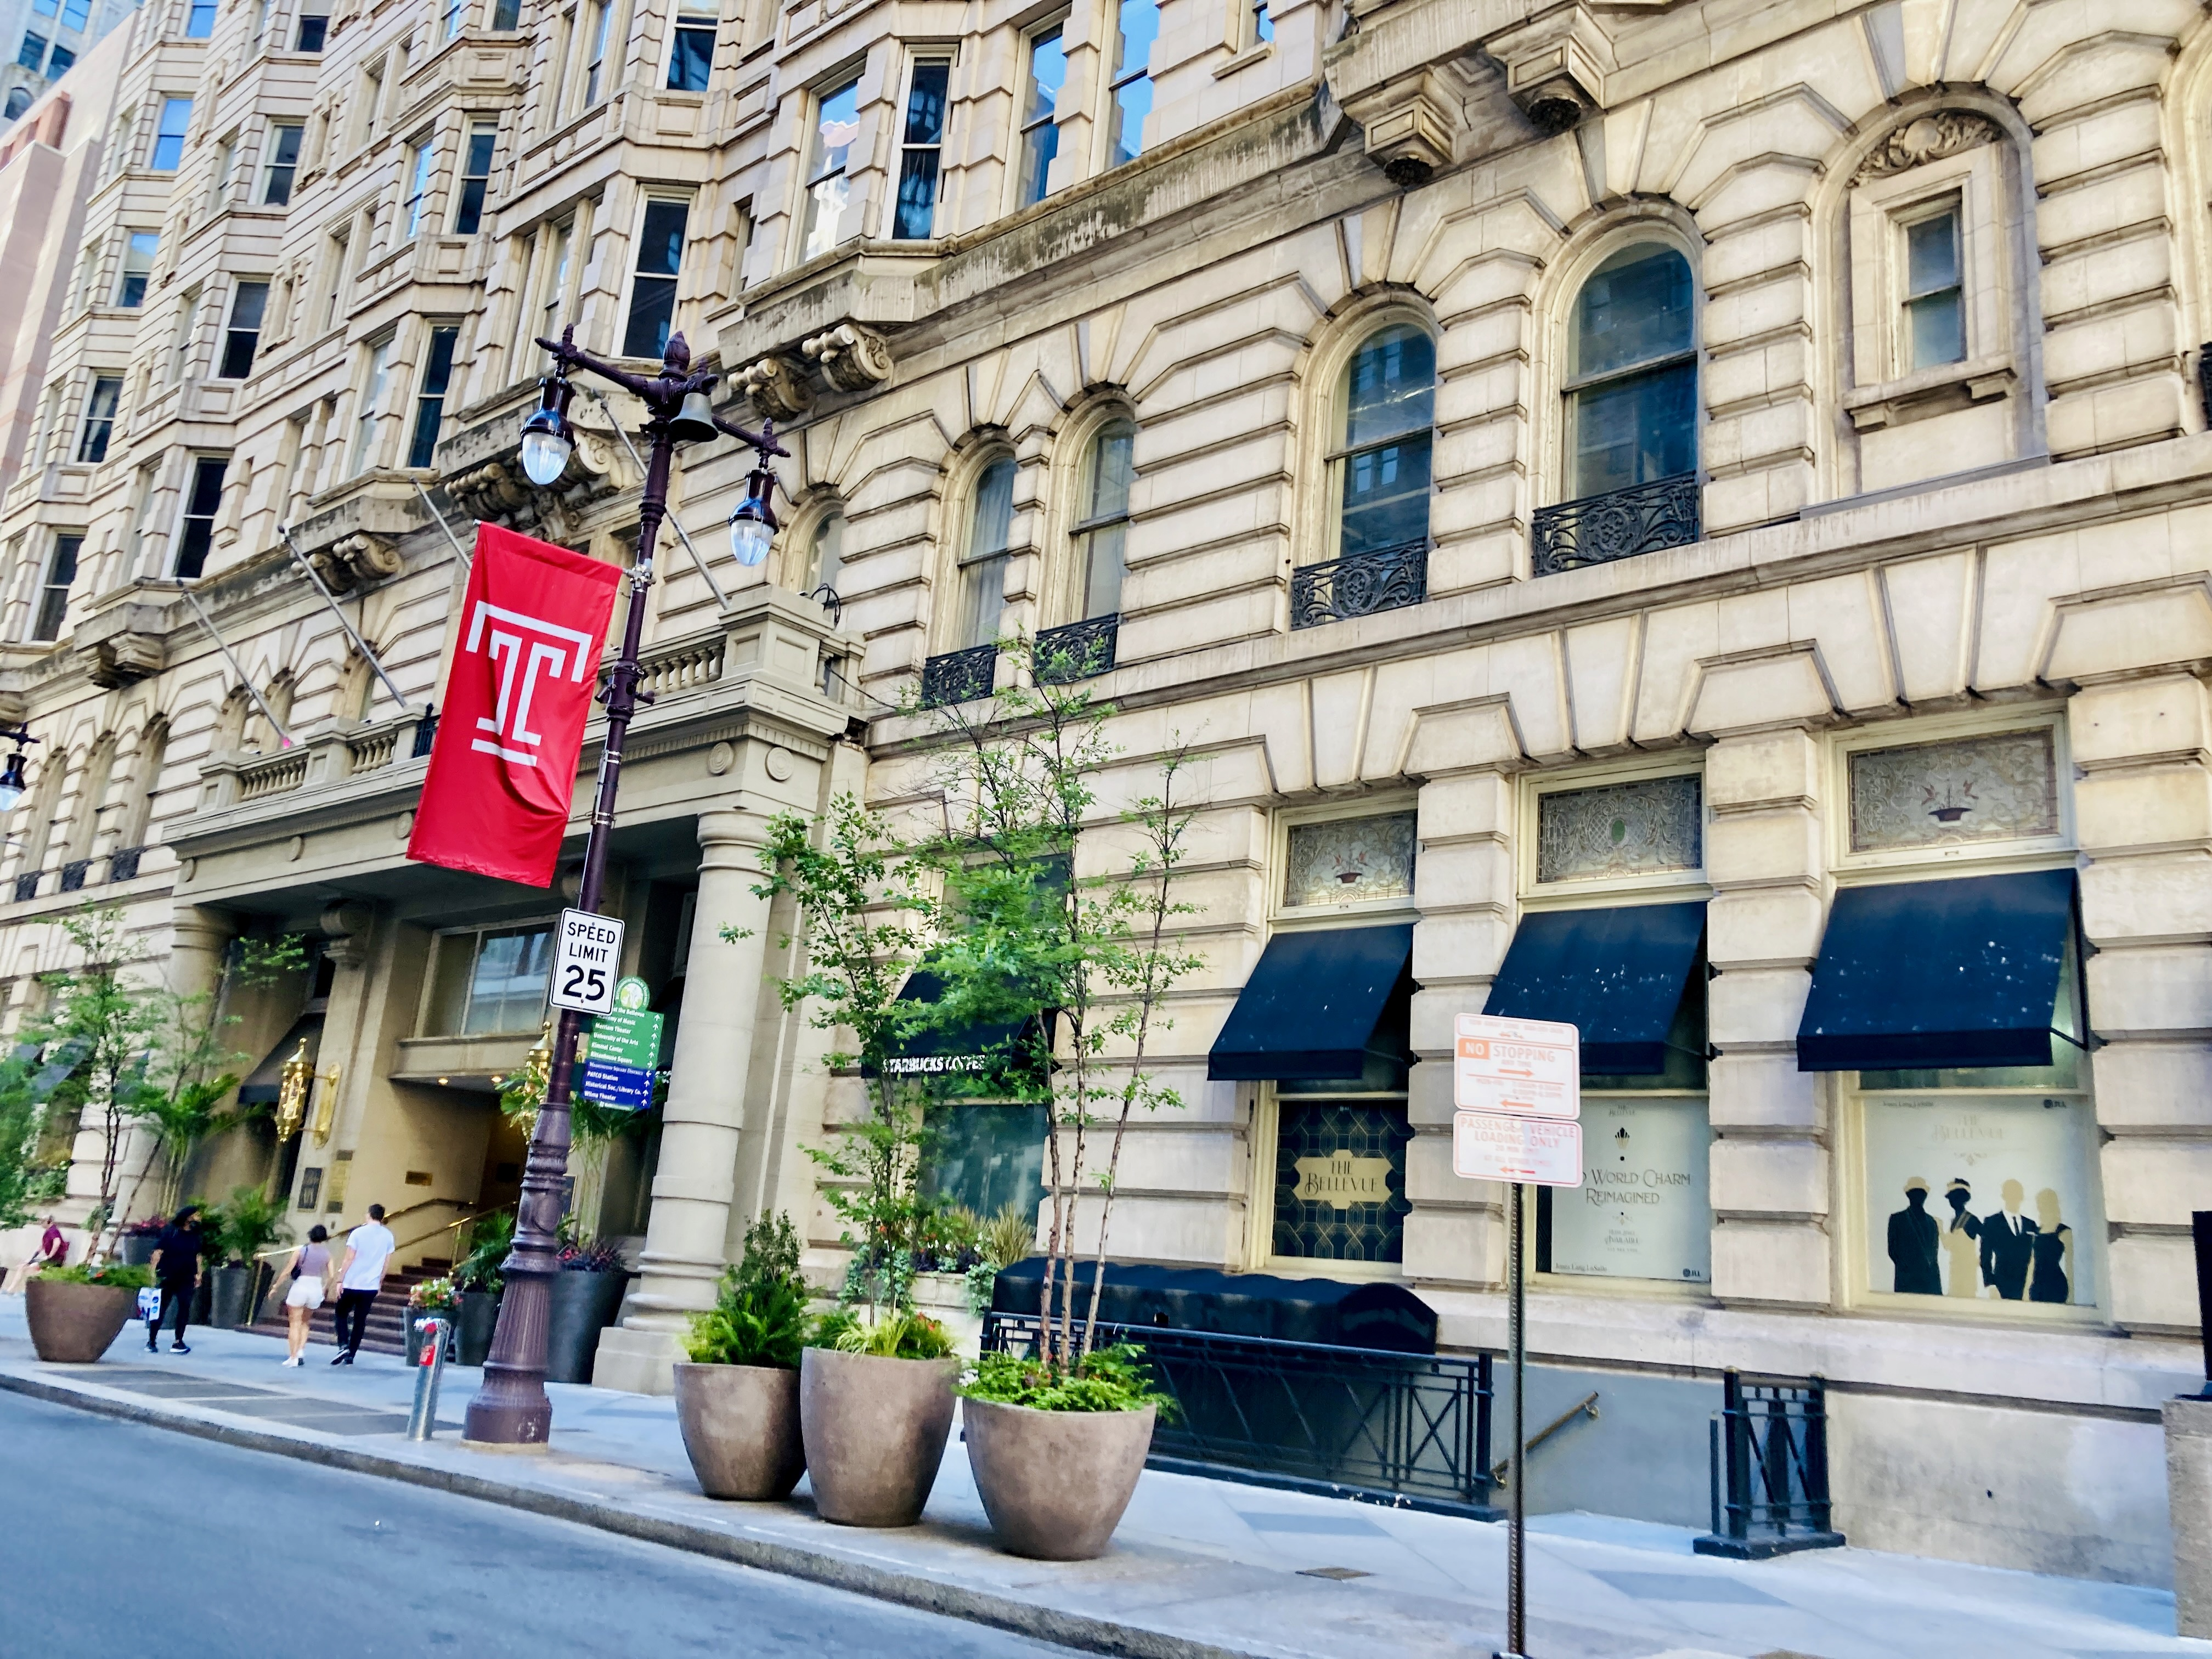 The Bellevue Hotel in Center City, PA